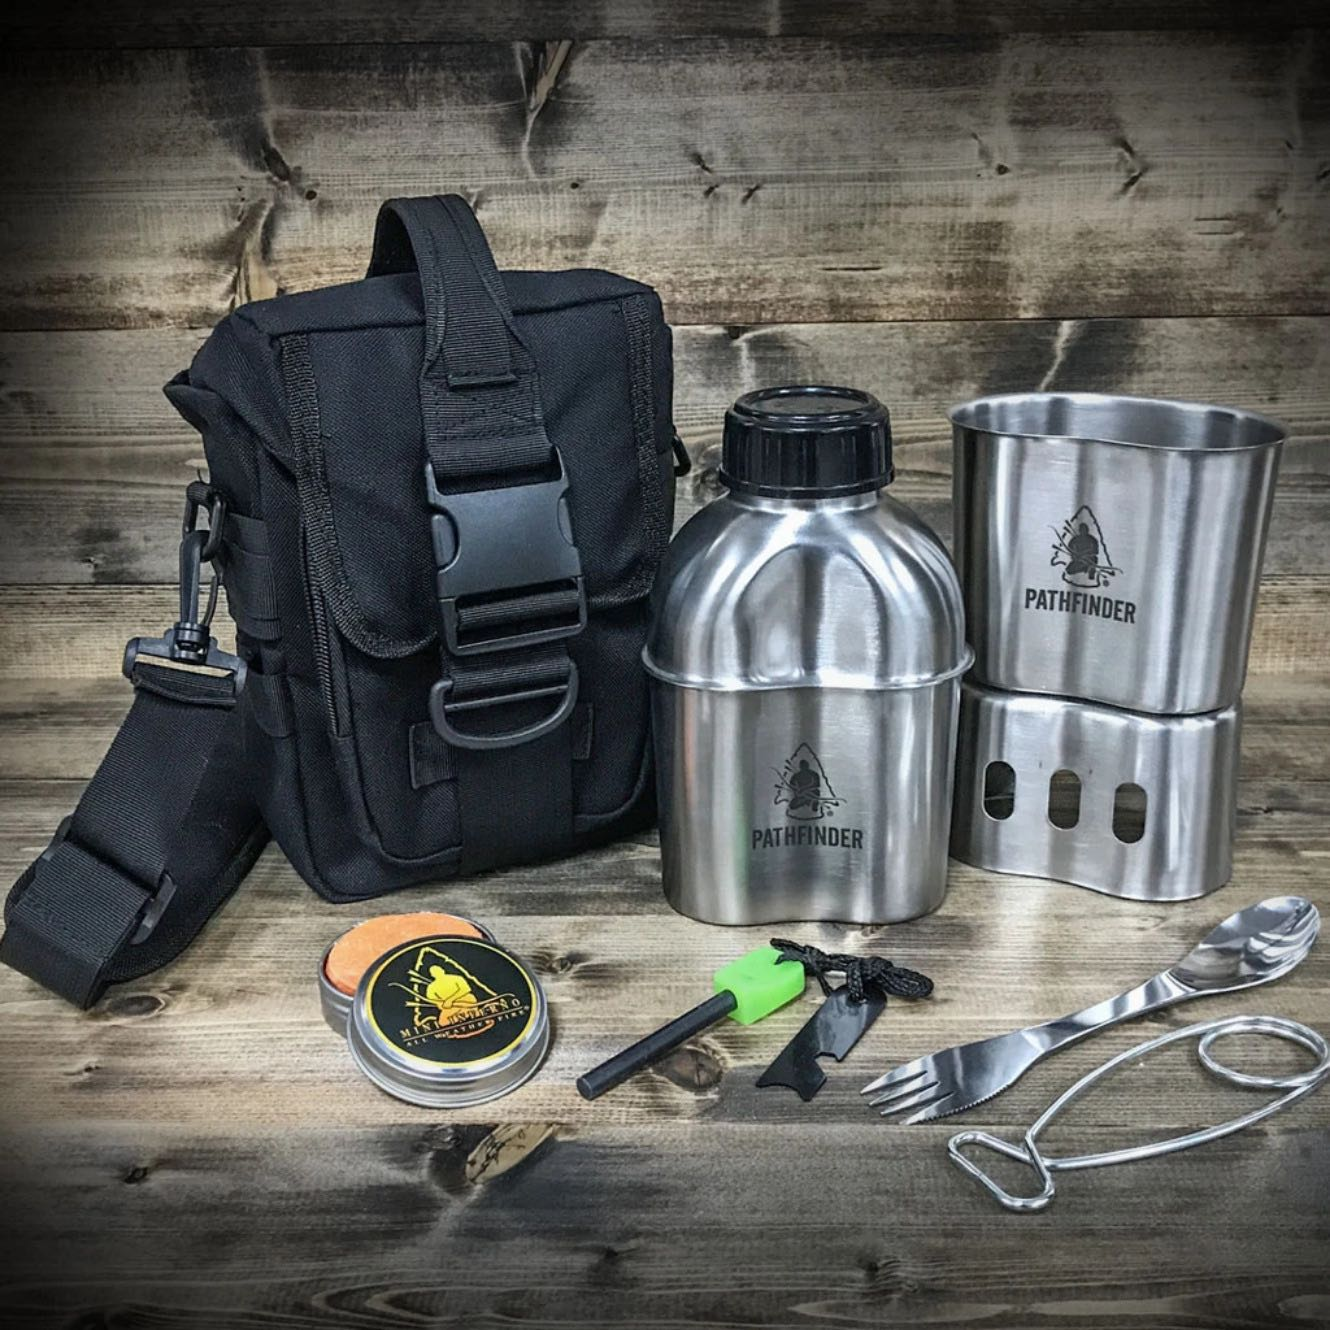 CAMPFIRE SURVIVAL COOKING KIT, BLACK - PATHFINDER